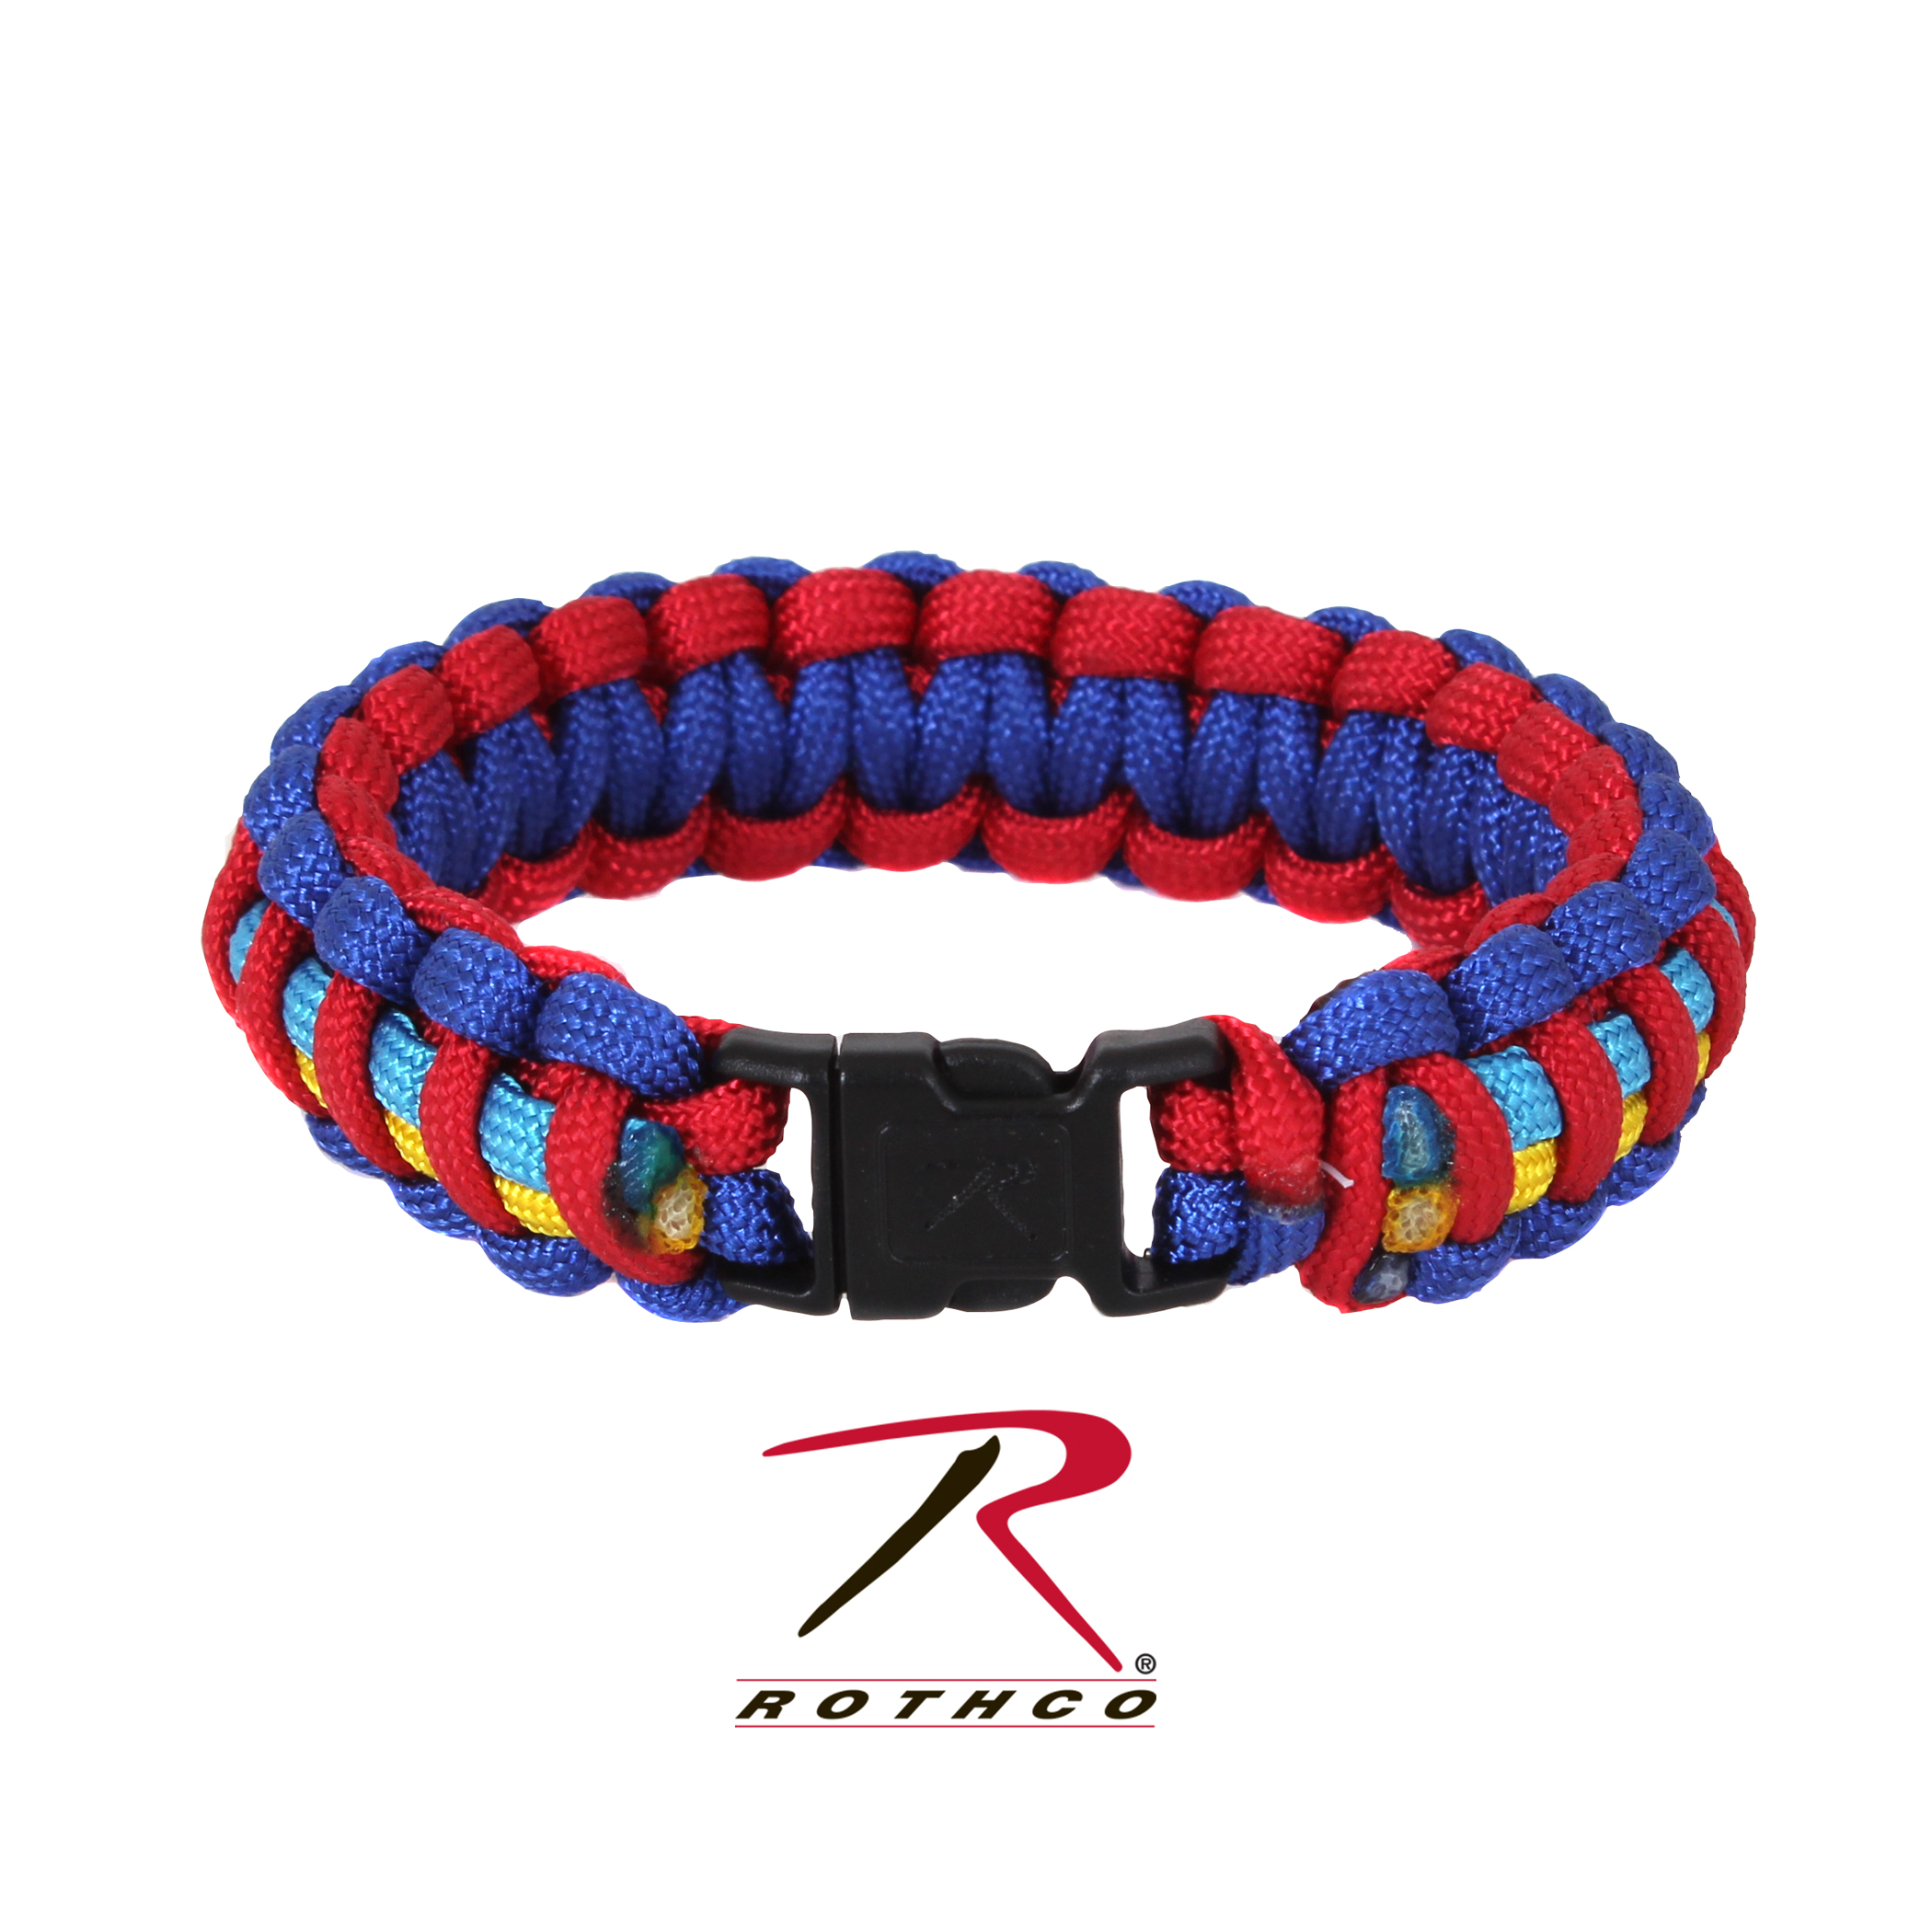 Rothco Autism Awareness Paracord Bracelet 7 Inches